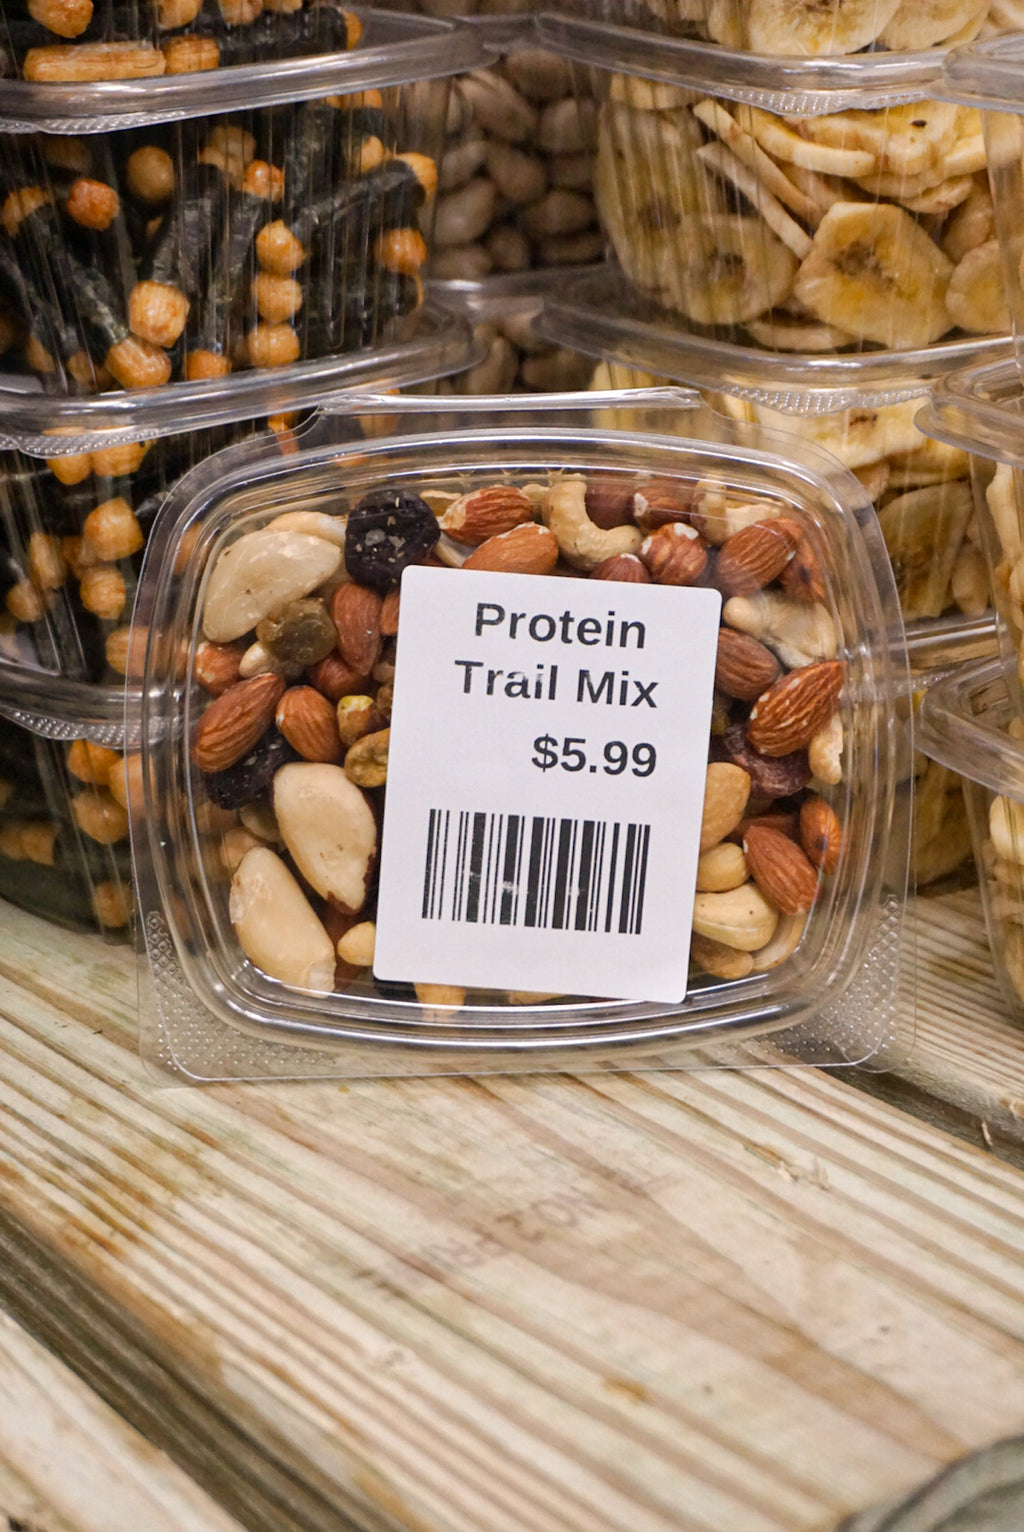 Protein Trail Mix - Larchmont